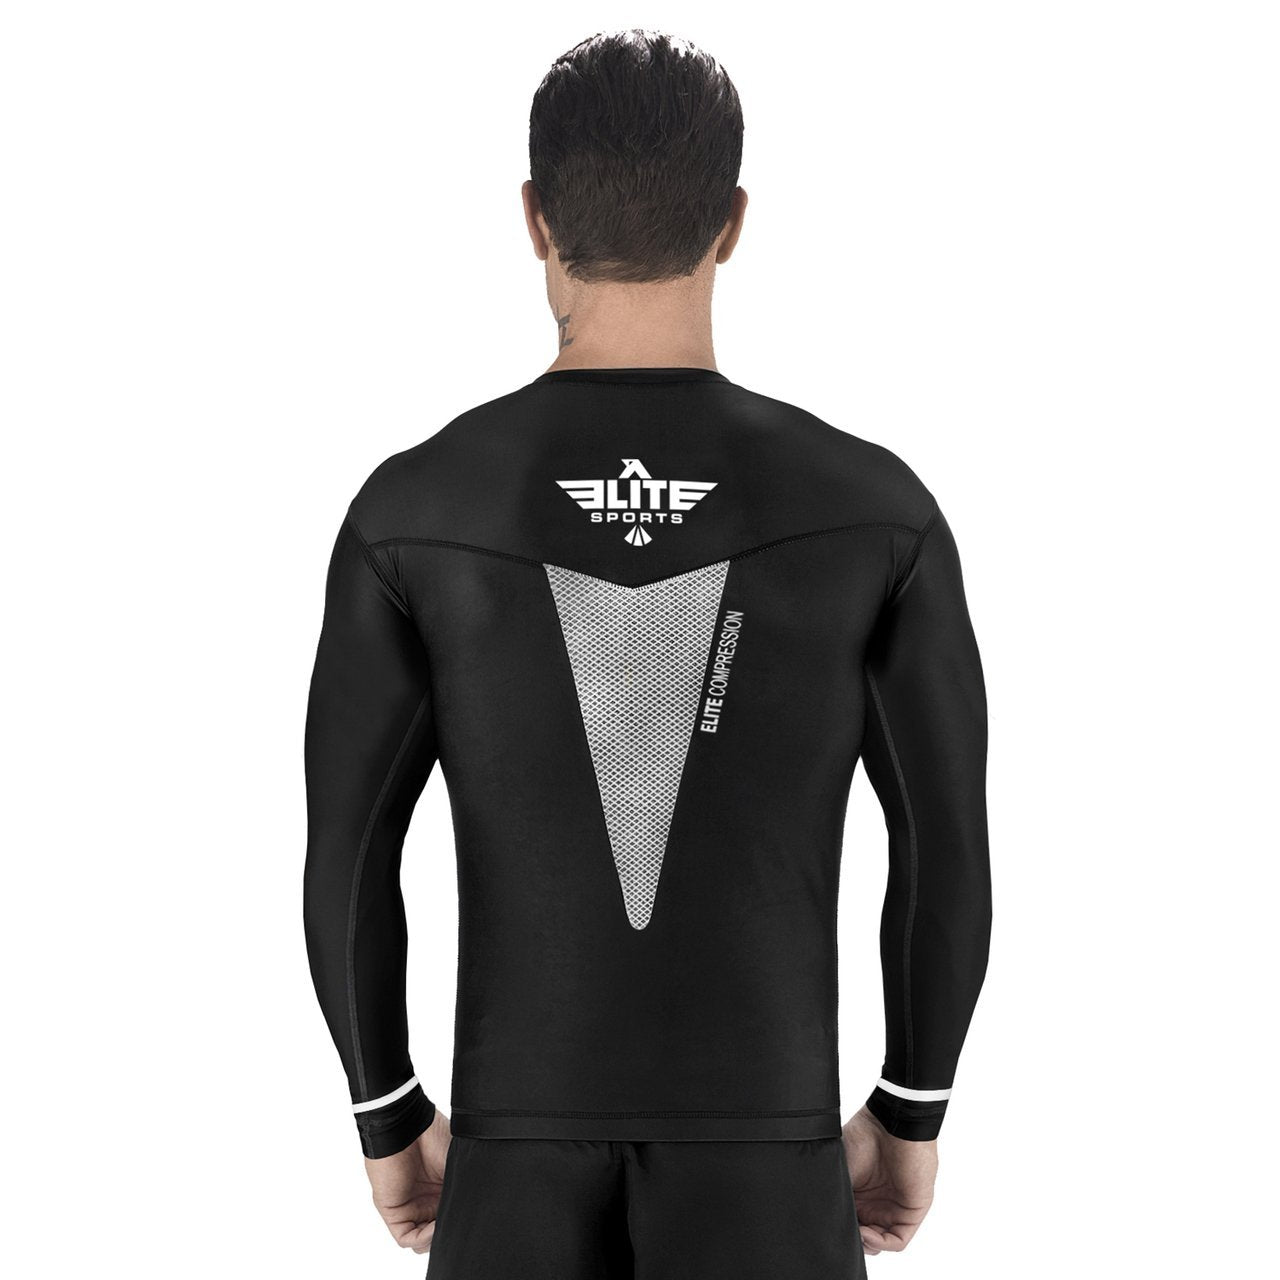 Load image into Gallery viewer, Elite Sports Star Series Sublimation Black/White Long Sleeve Wrestling Rash Guard